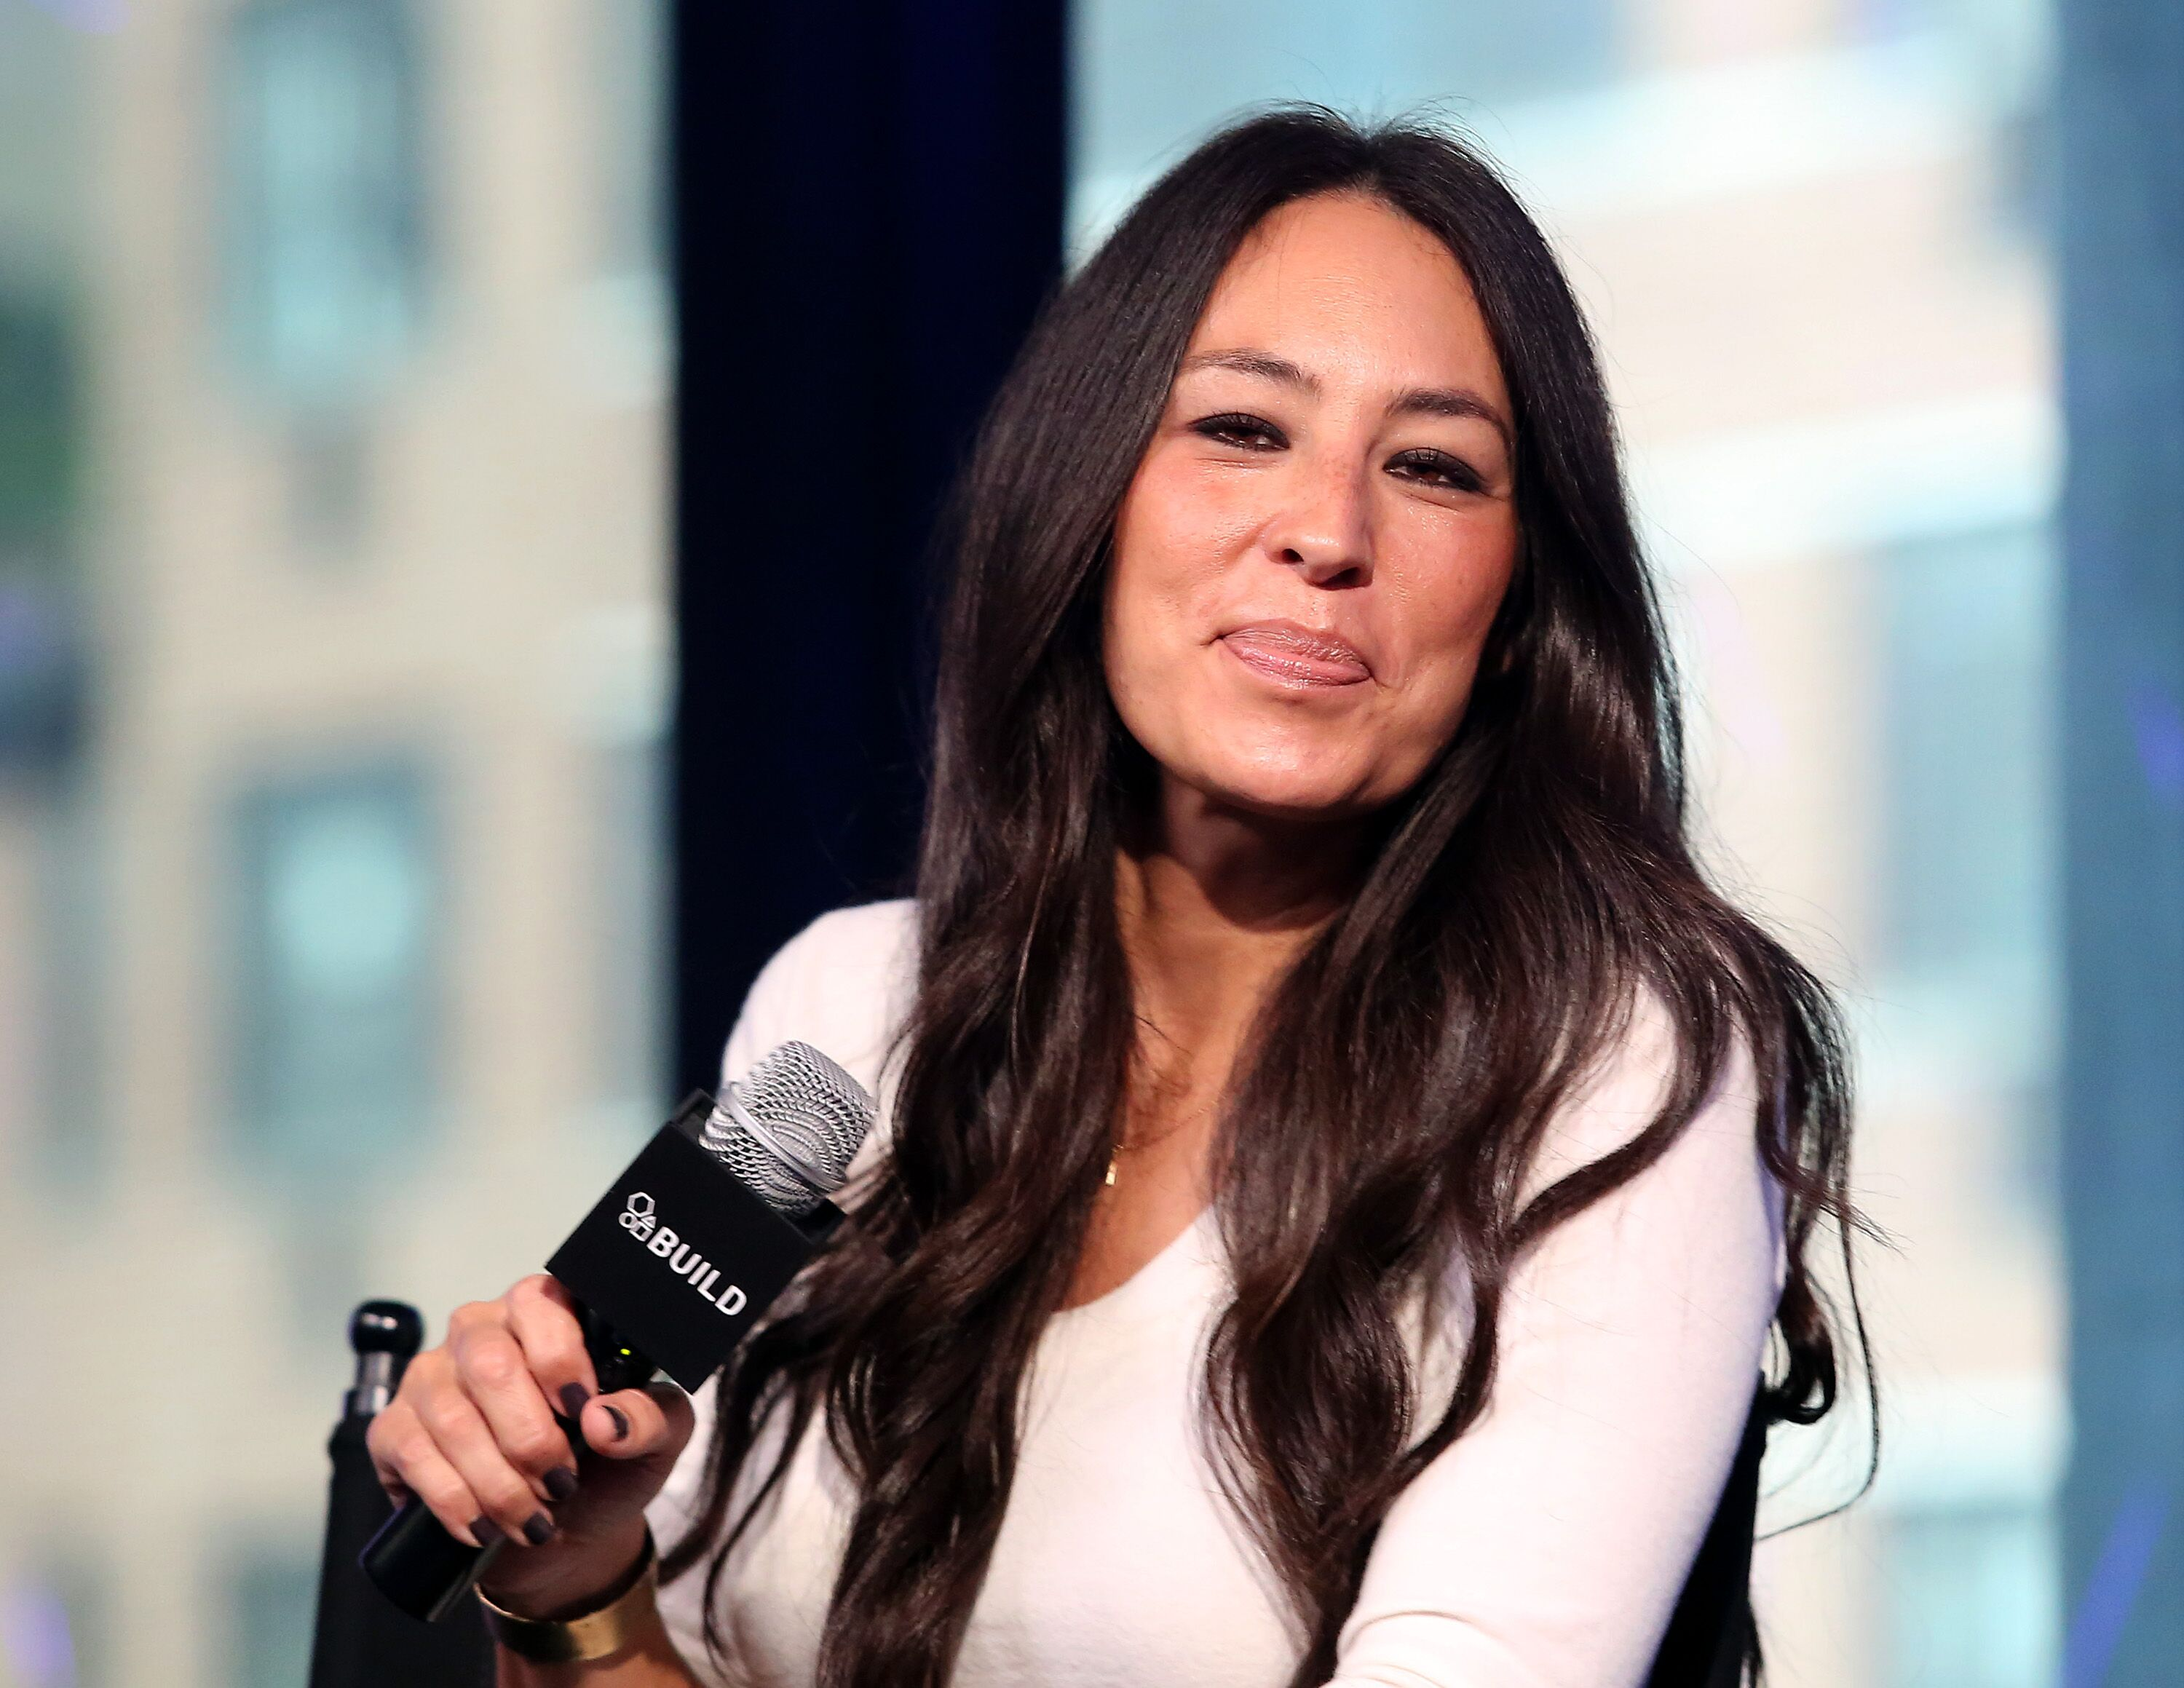 """Designer Joanna Gaines appear to promote """"The Magnolia Story"""" during the AOL BUILD Series at AOL HQ on October 19, 2016. 